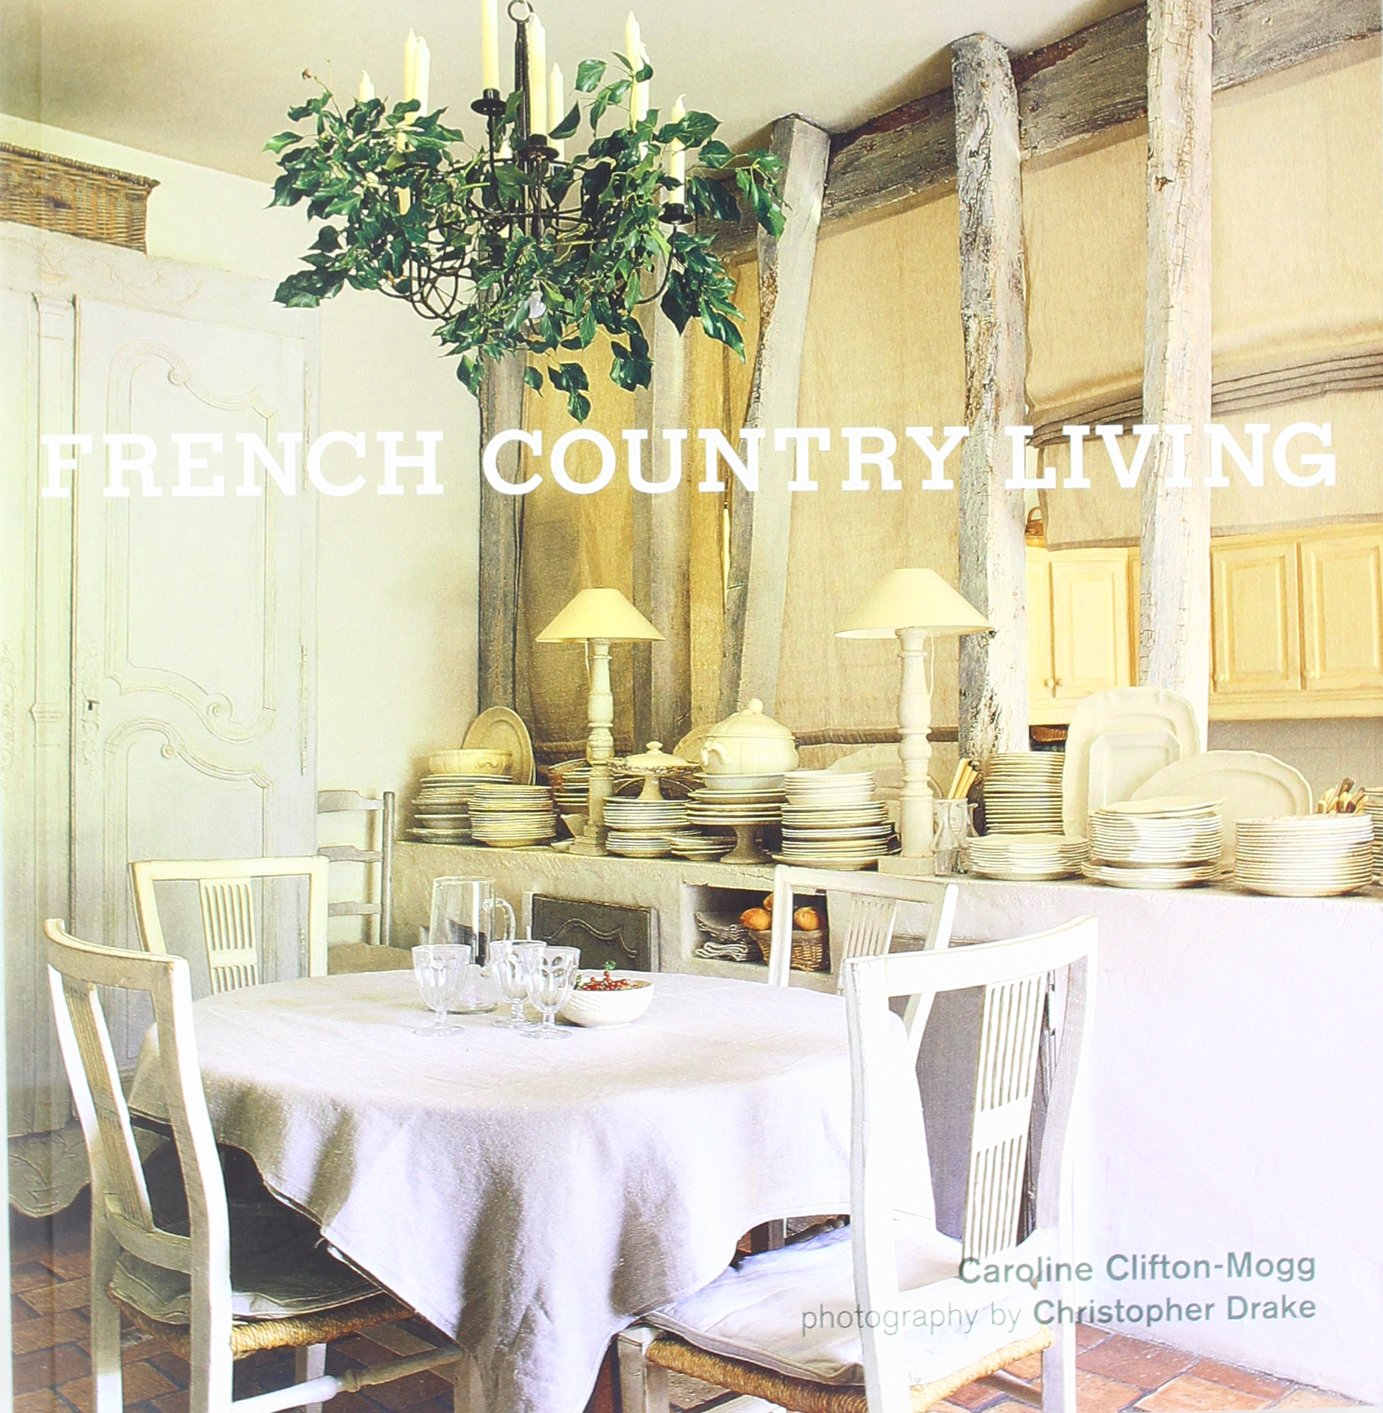 French Country Living Amazon Caroline Clifton Mogg Books